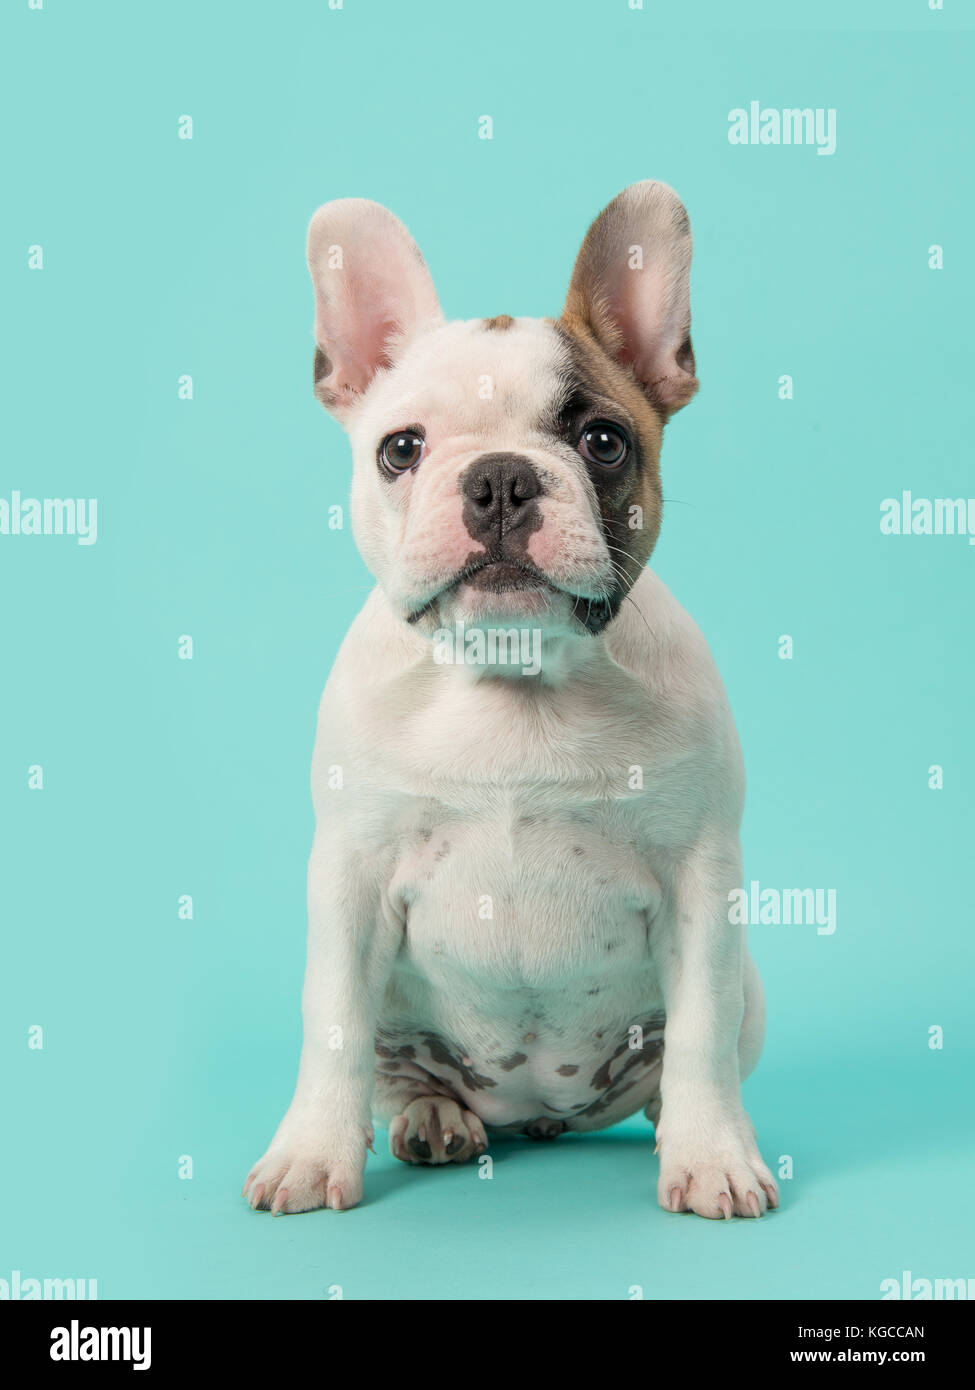 be14a2010c58 Cute sitting white and brown french bulldog puppy facing the camera on a  mint blue background